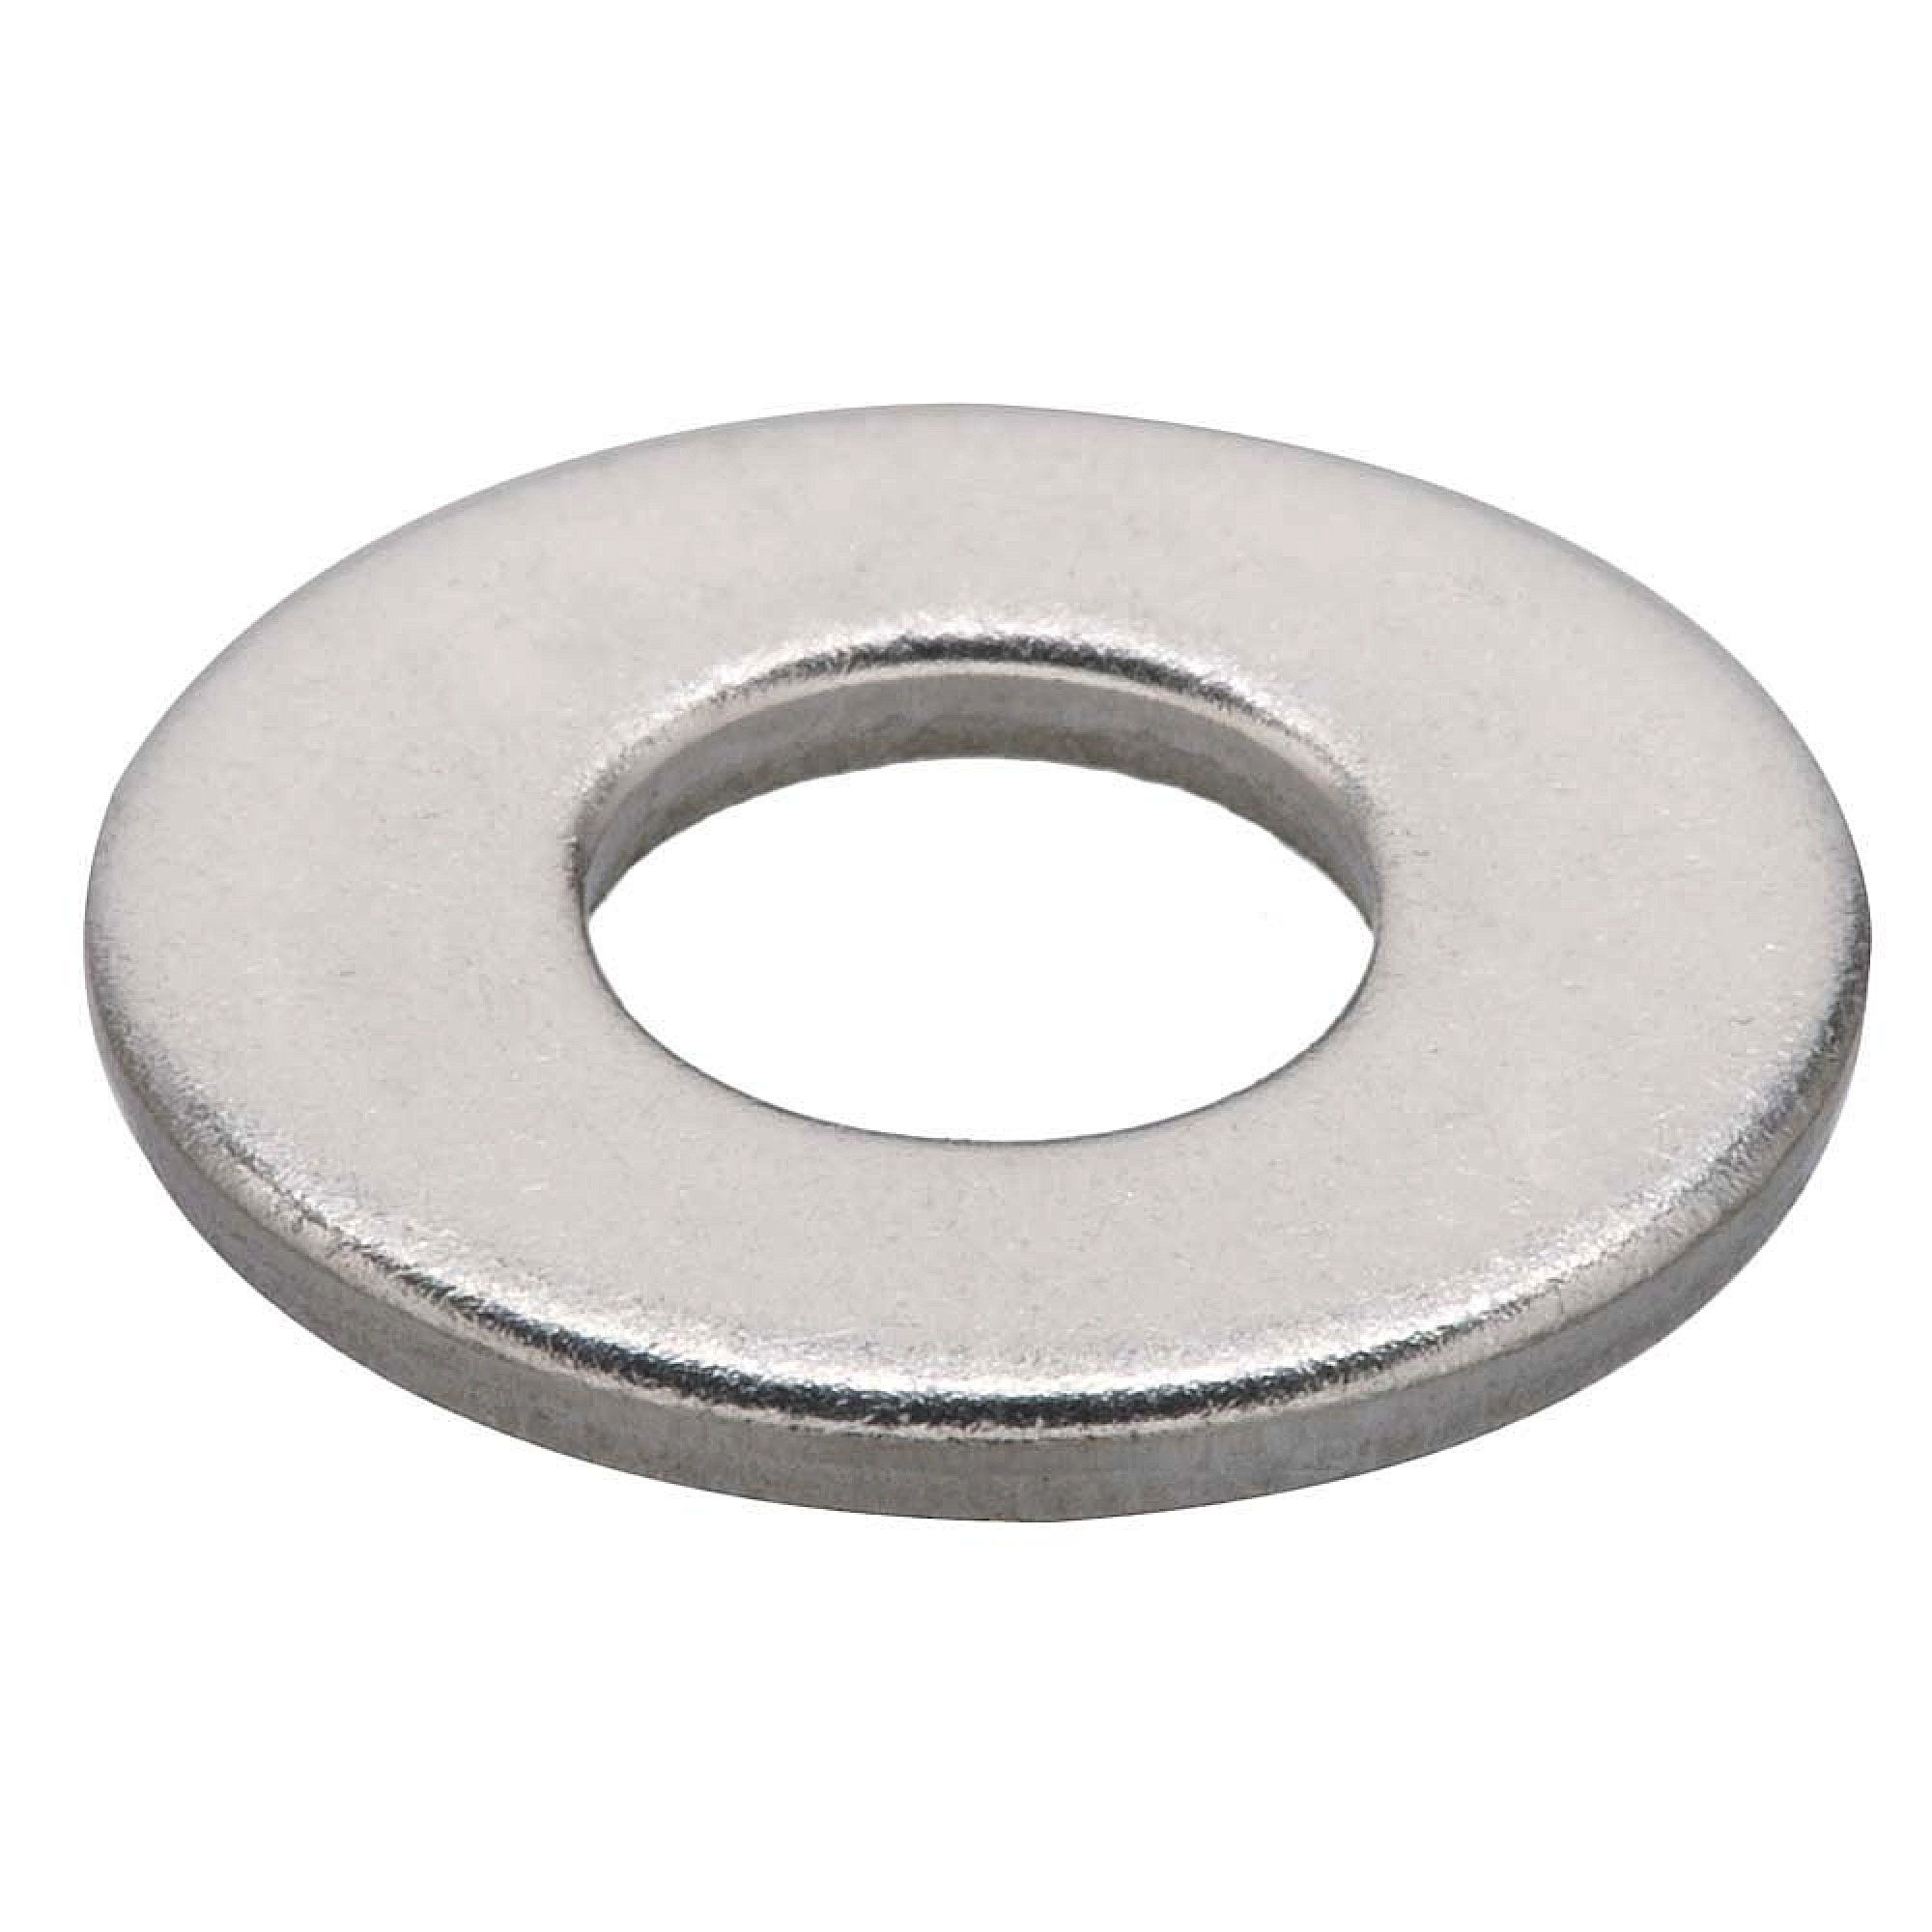 Crown Bolt 31392 1 4 Inch Stainless Steel Flat Washers 50 Count Stainless Steel Fasteners Steel Washer